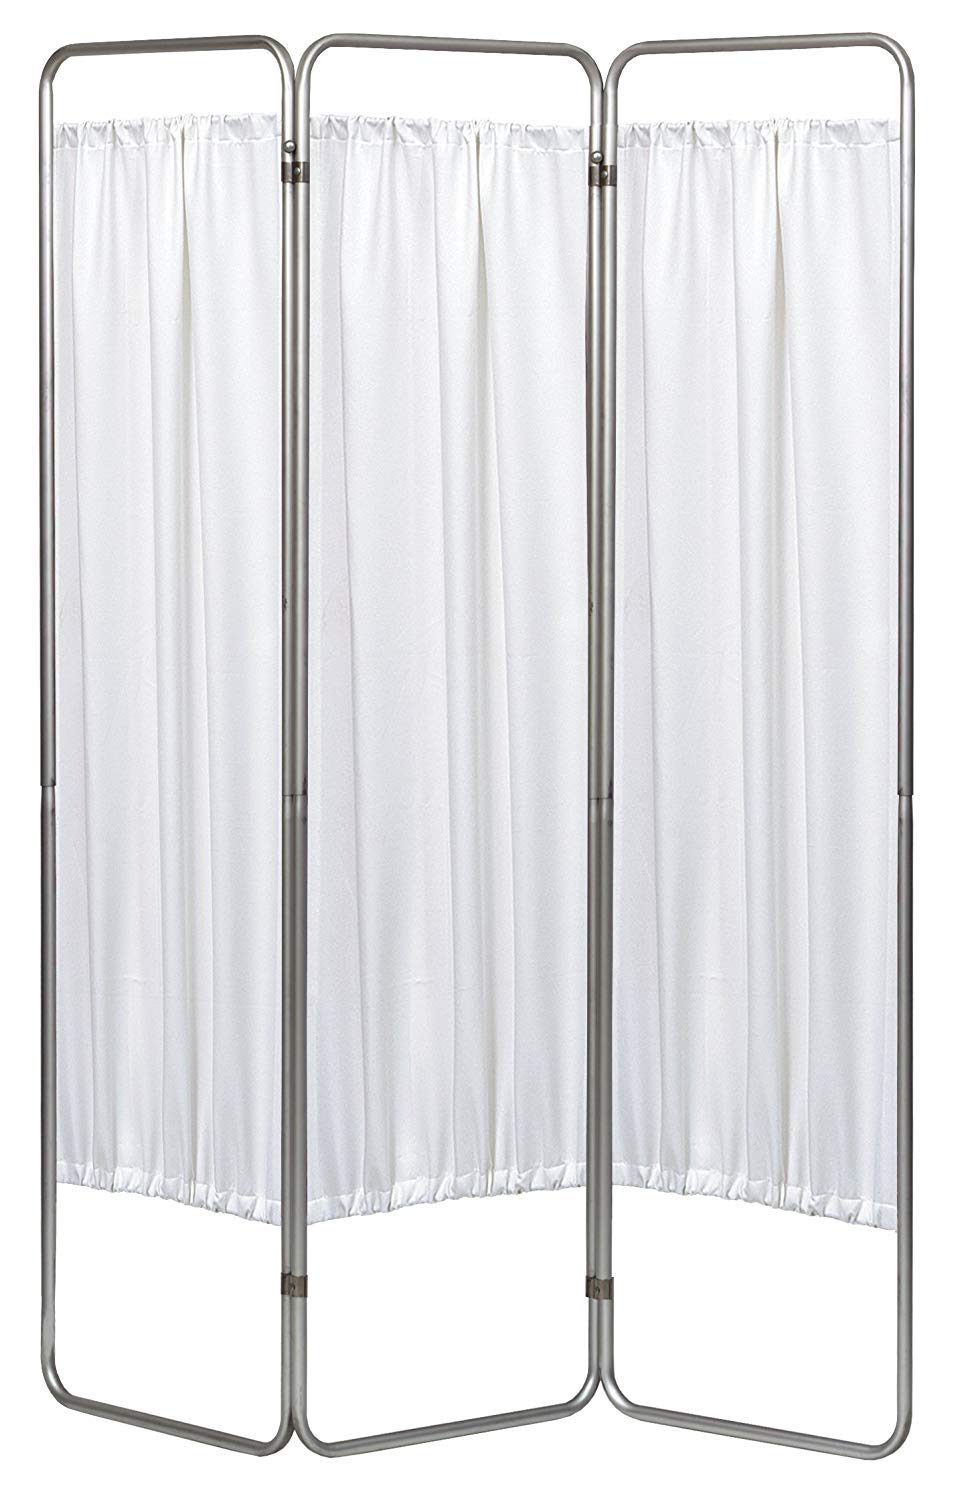 Omnimed 153093-WH 3 Panel Medical Privacy Screen w White Vinyl Panel by Omnimed (Image #1)